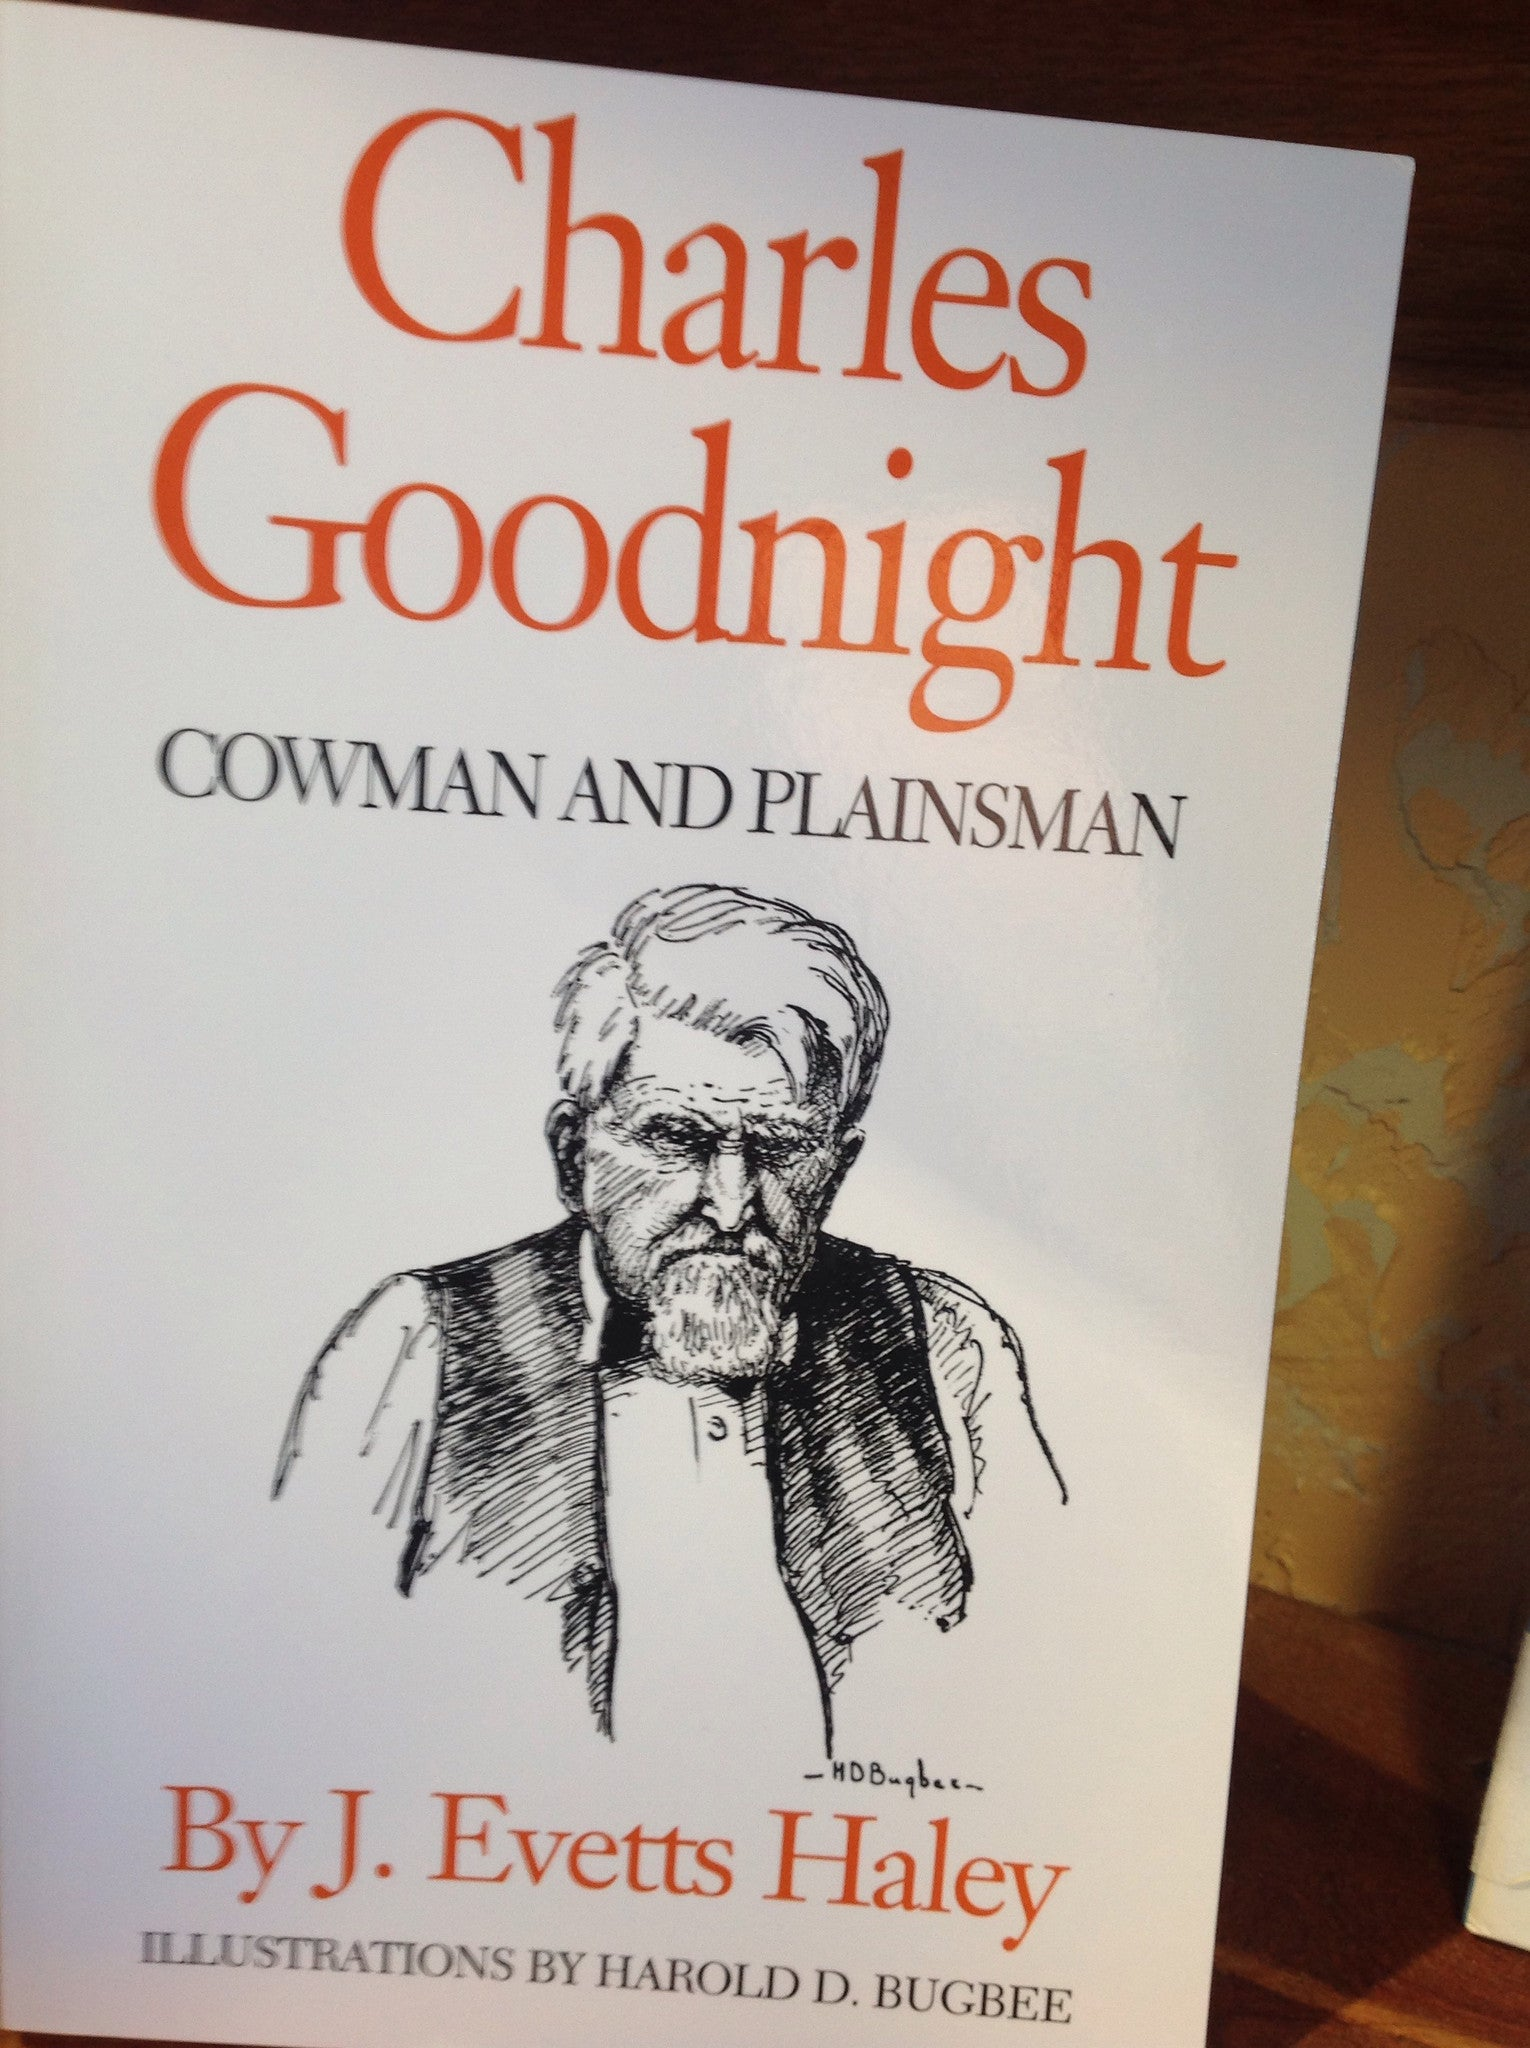 BOOKS - Charles Goodnight: Cowman and Plainsman